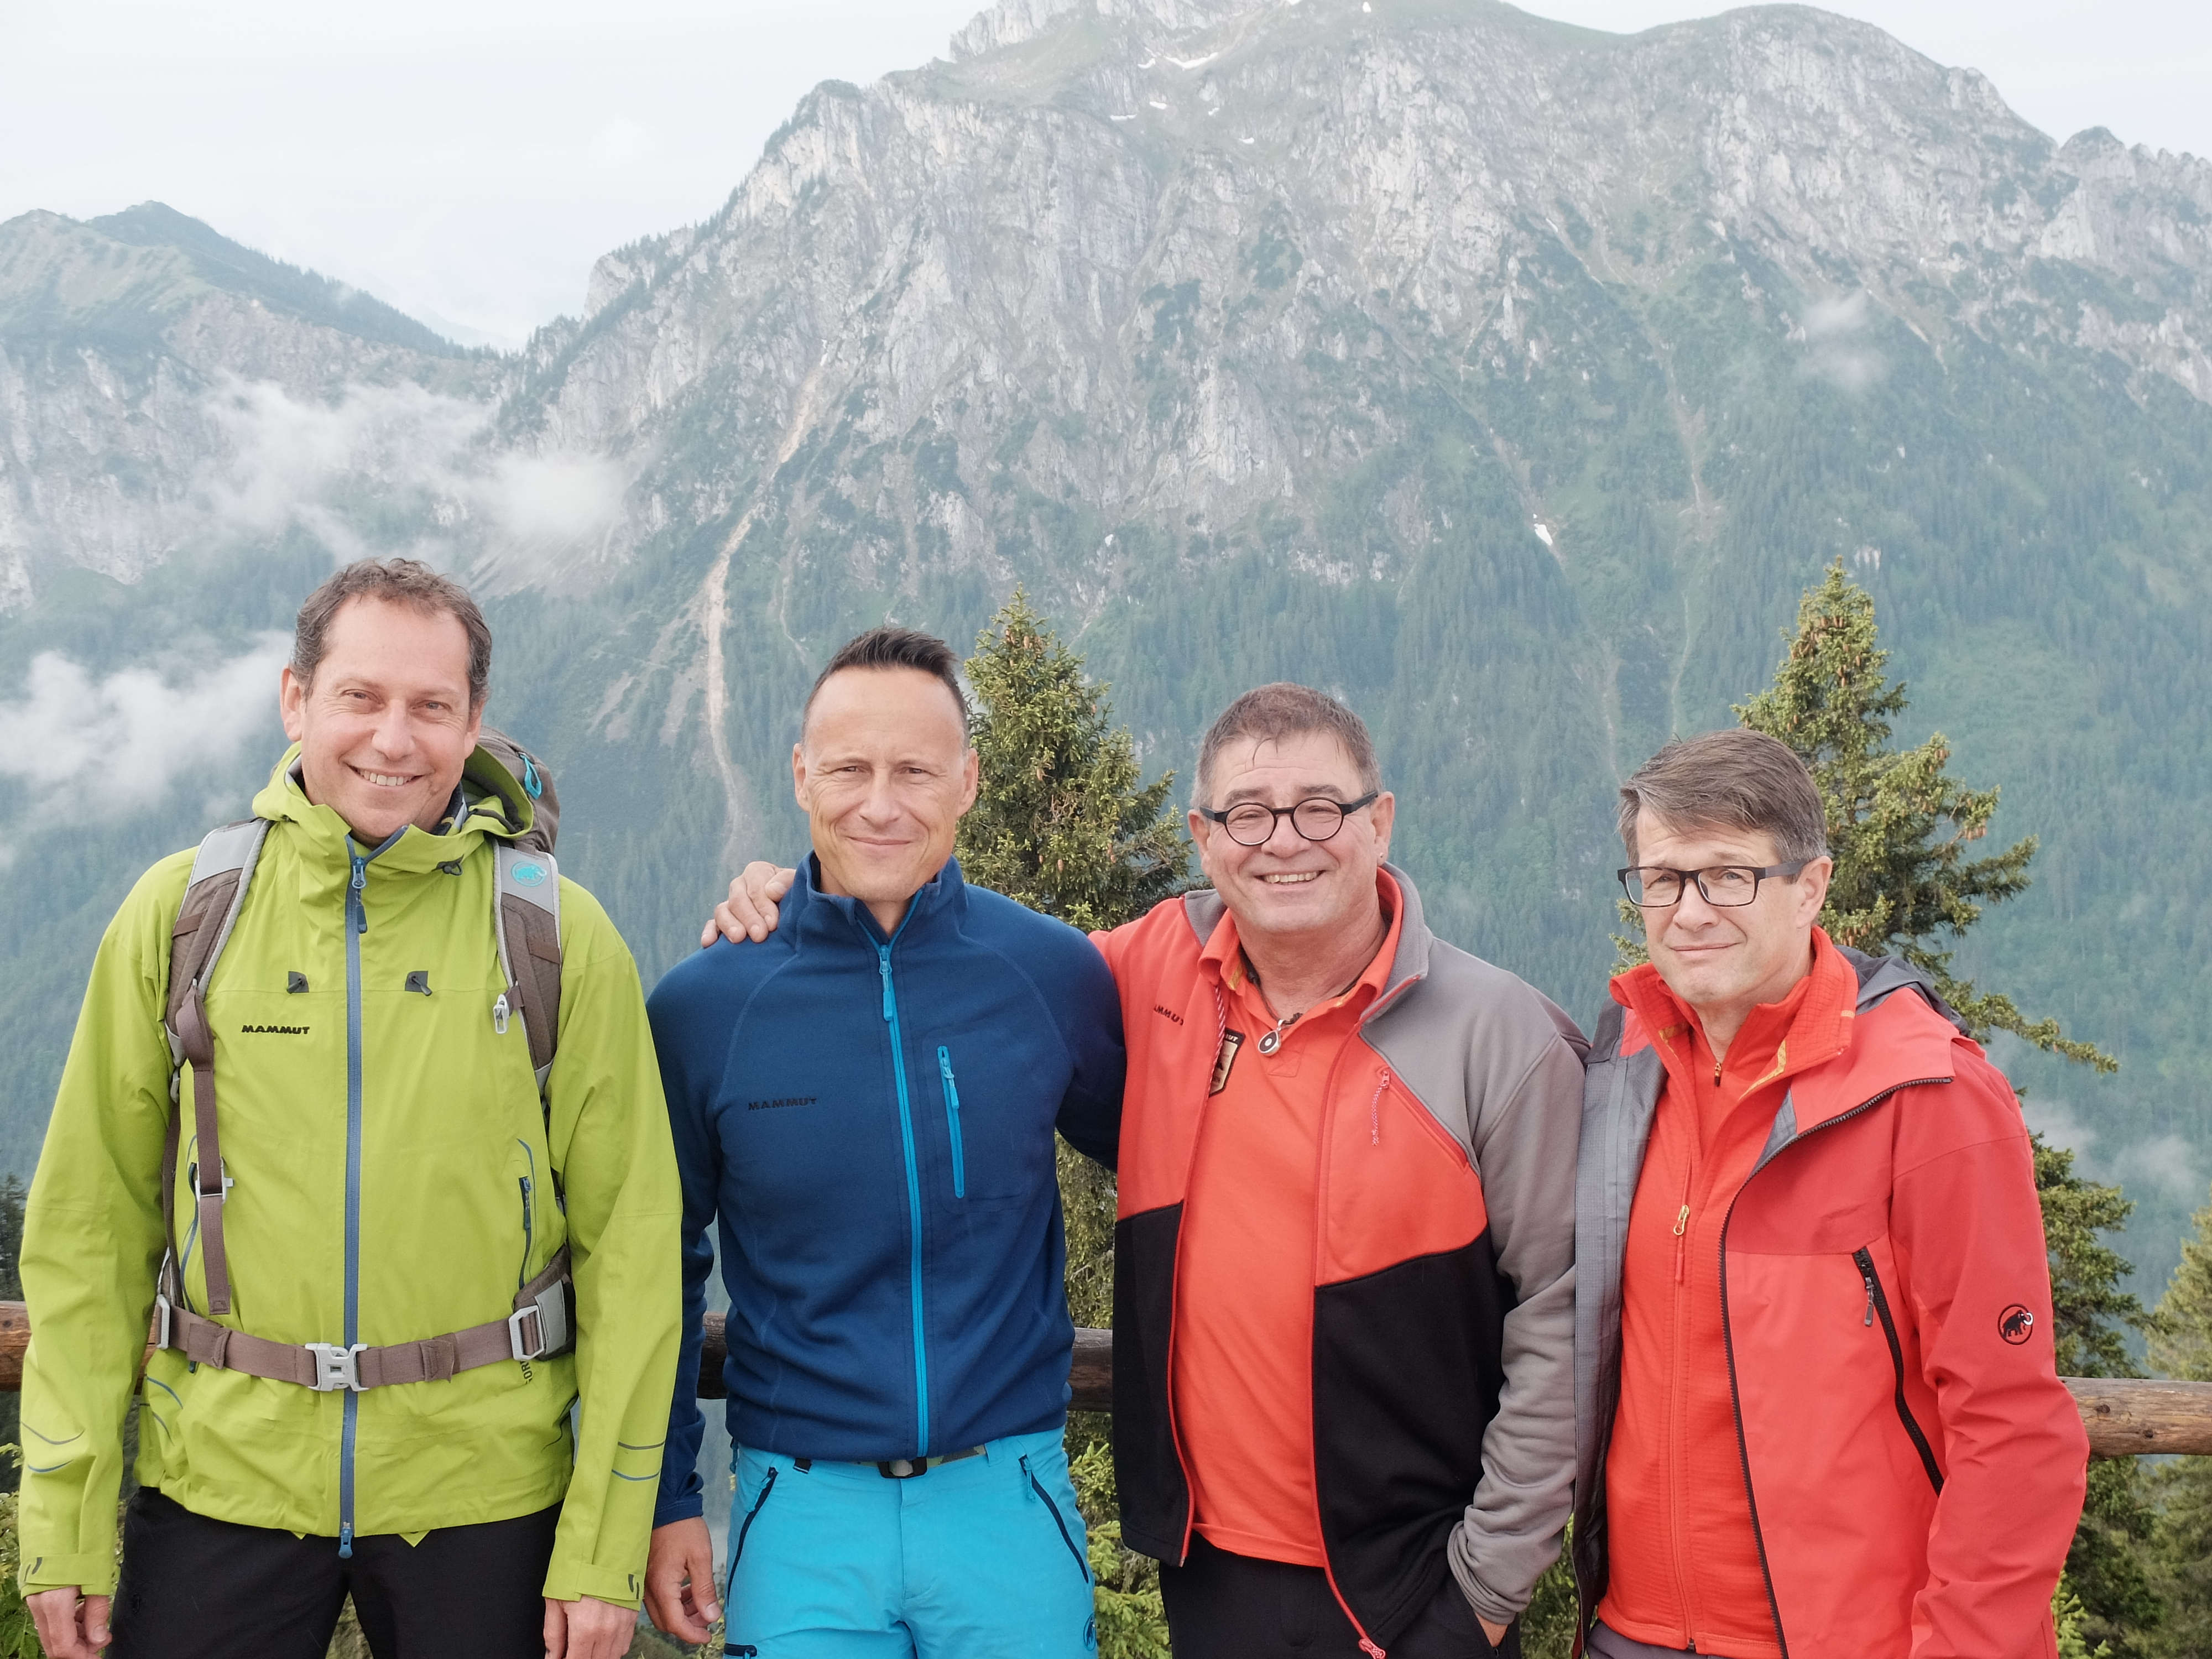 V.r.n.l.: Rolf Schmid, CEO Mammut Sports Group, Ernst Schweble, Head of Corporate Business Mammut Deutschland, Dean Polic, Country Manager Mammut Deutschland, Stefan Merkt, Chief Channel Officer Mammut Sports Group